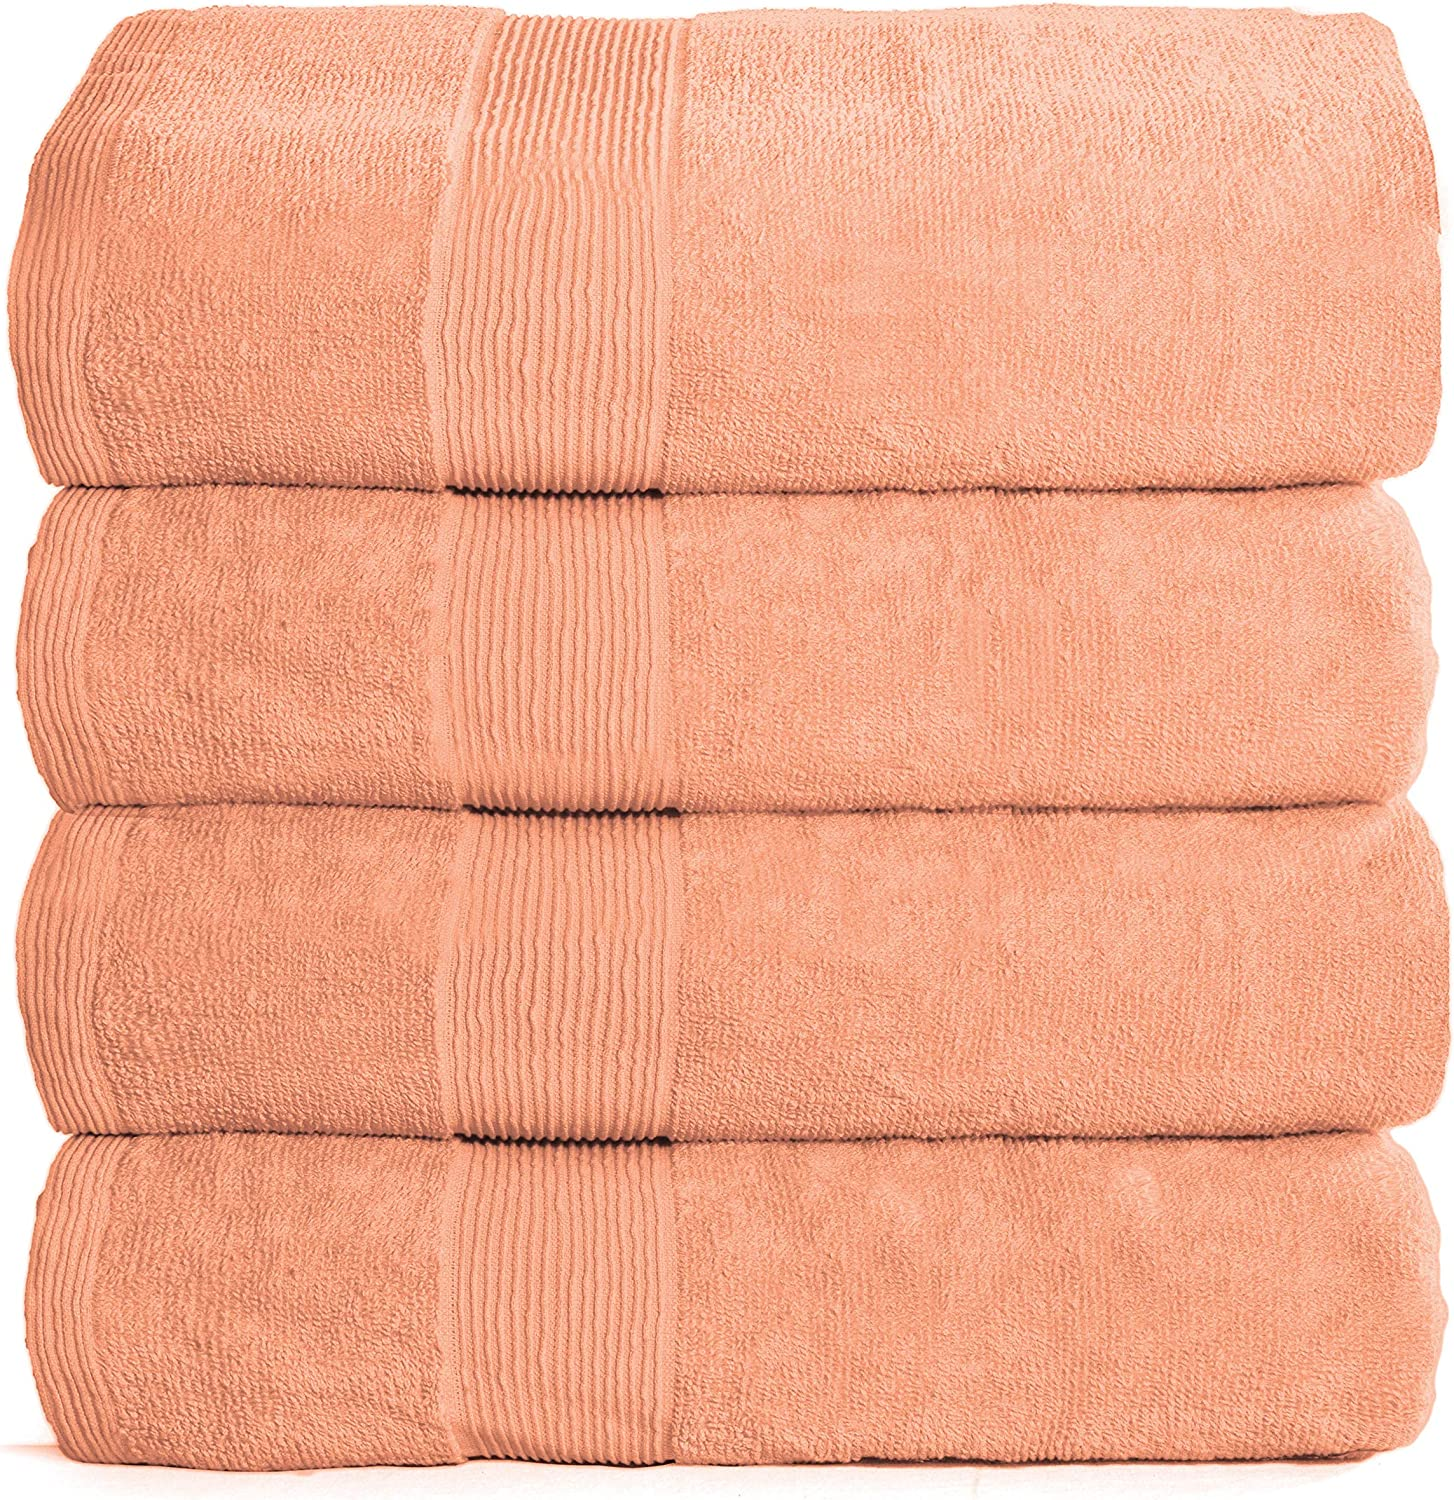 Elvana Home 4 Pack Bath Towel Set 27x54, 100% Ring Spun Cotton, Ultra Soft Highly Absorbent Machine Washable Hotel Spa Quality Bath Towels for Bathroom, 4 Bath Towels Peach: Kitchen & Dining